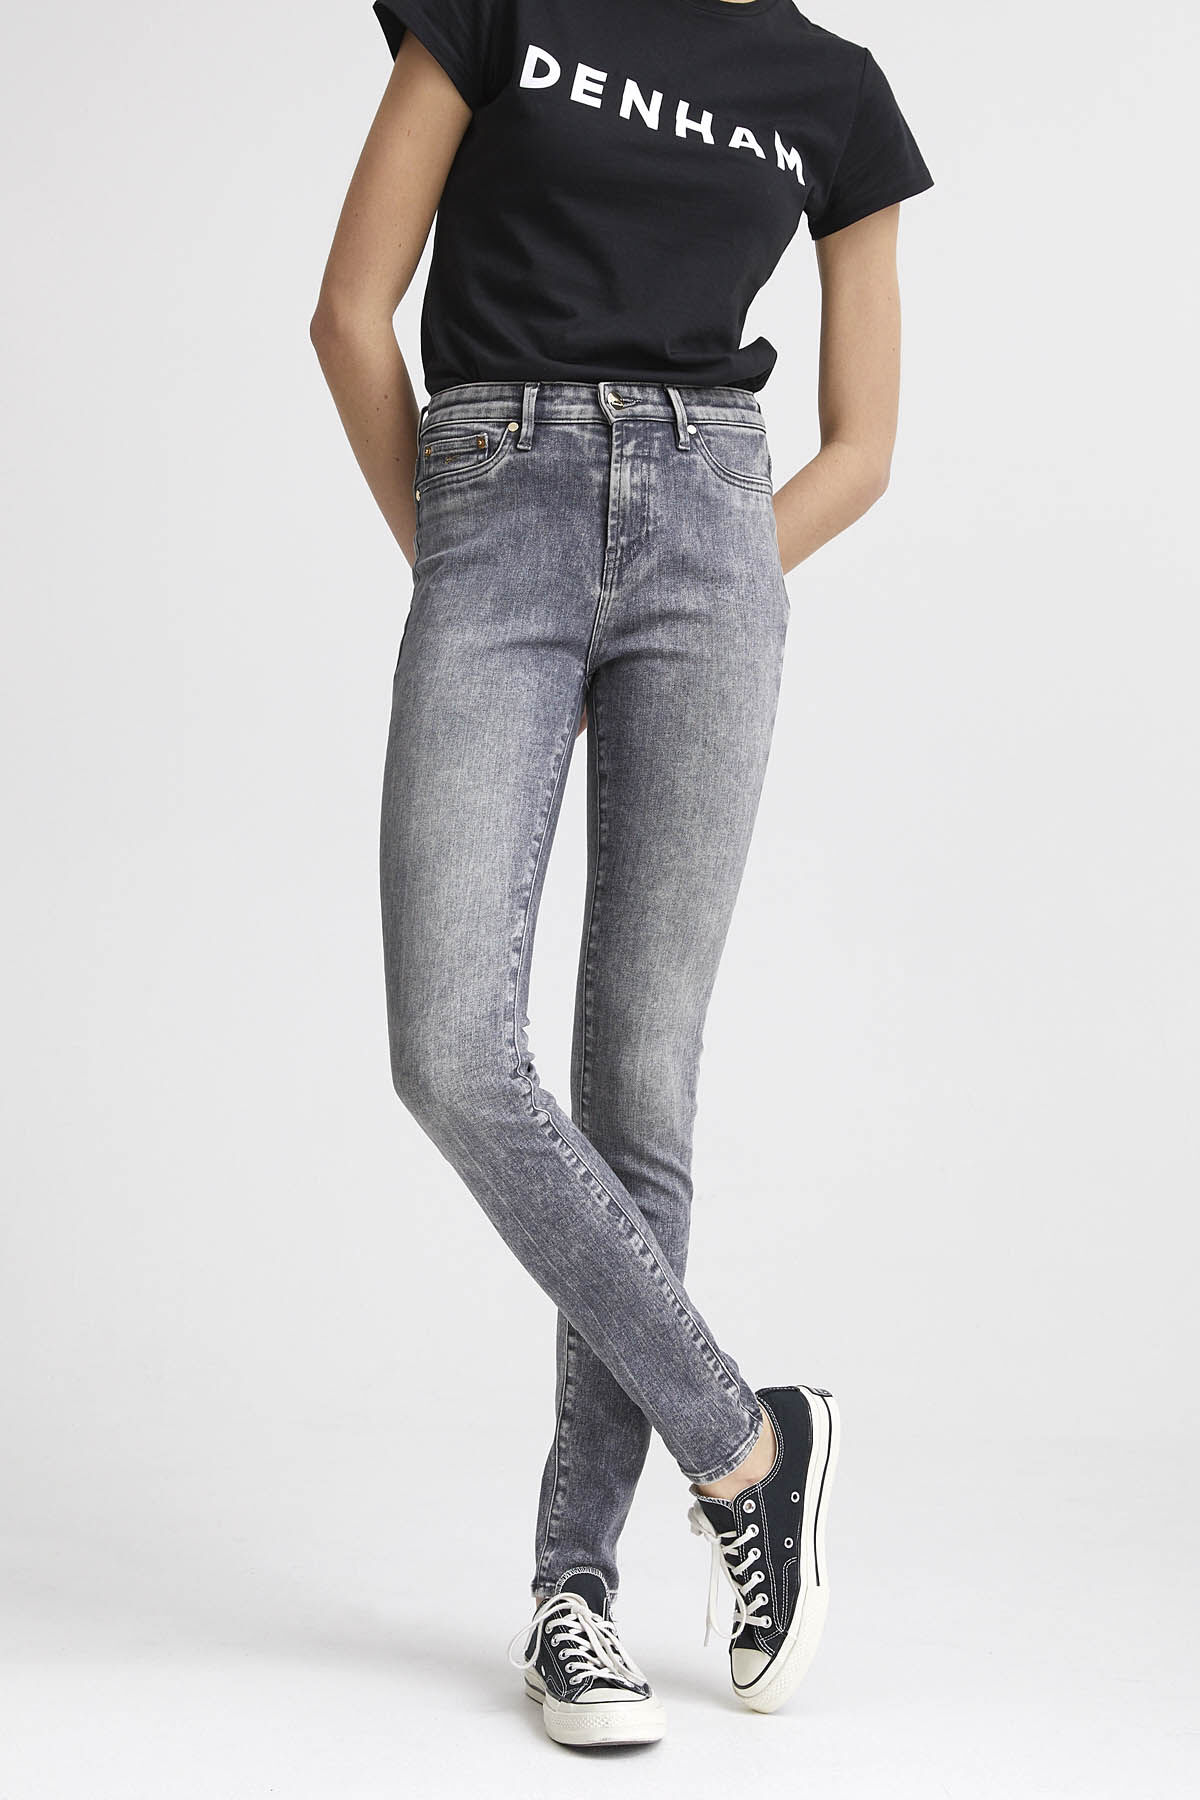 NEEDLE Grey Cast Denim - High-rise, Skinny Fit